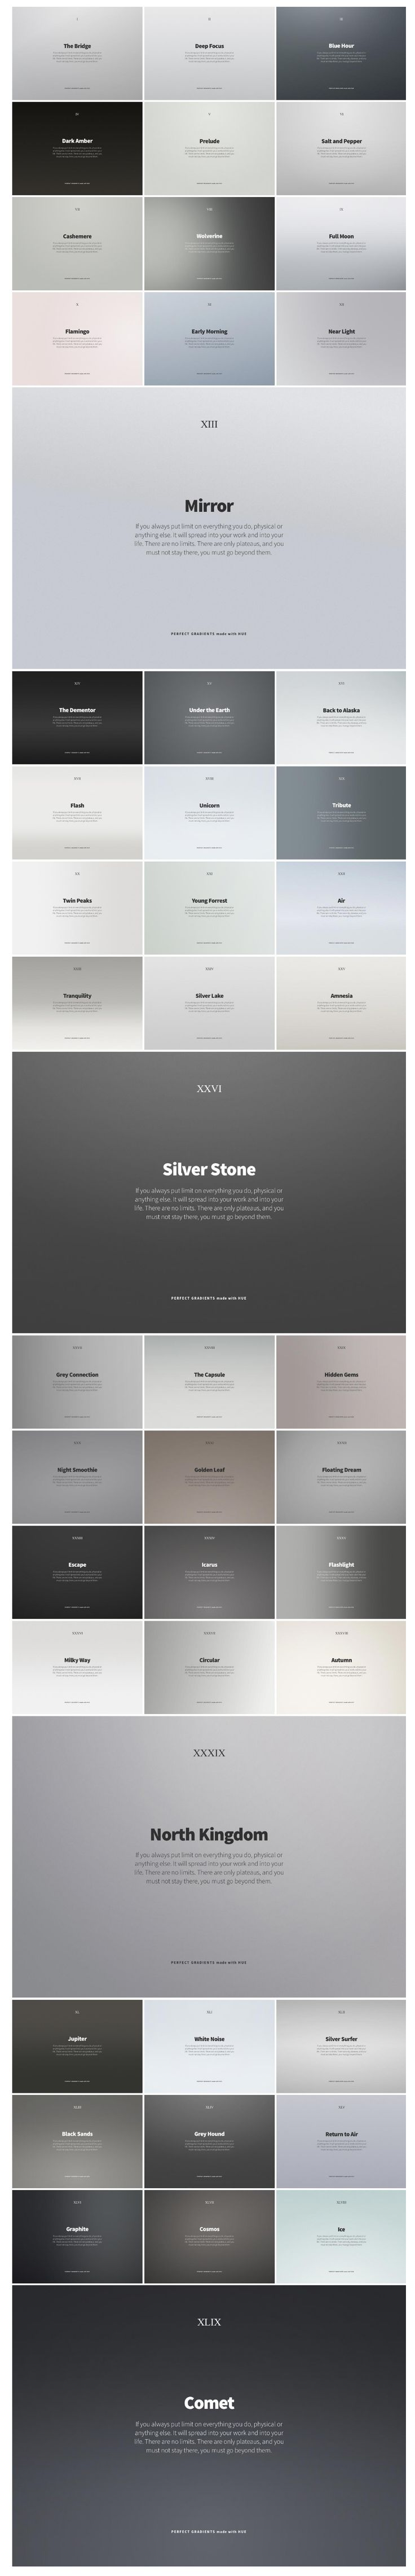 color pallette options;  Created by LA-based designer, Vladimir Kudinov, Hue is a collection of 49 backdrops and gradients that lend atmosphere to layouts and product shots. The collection is photo-realistic, blending seamlessly with product photographs; and reminiscent of Scandinavian design, with cool greys and warm pastels dominating. The atmospheric Wolverine, the stylish Golden Leaf, and the calm Milky Way are particular favourites.